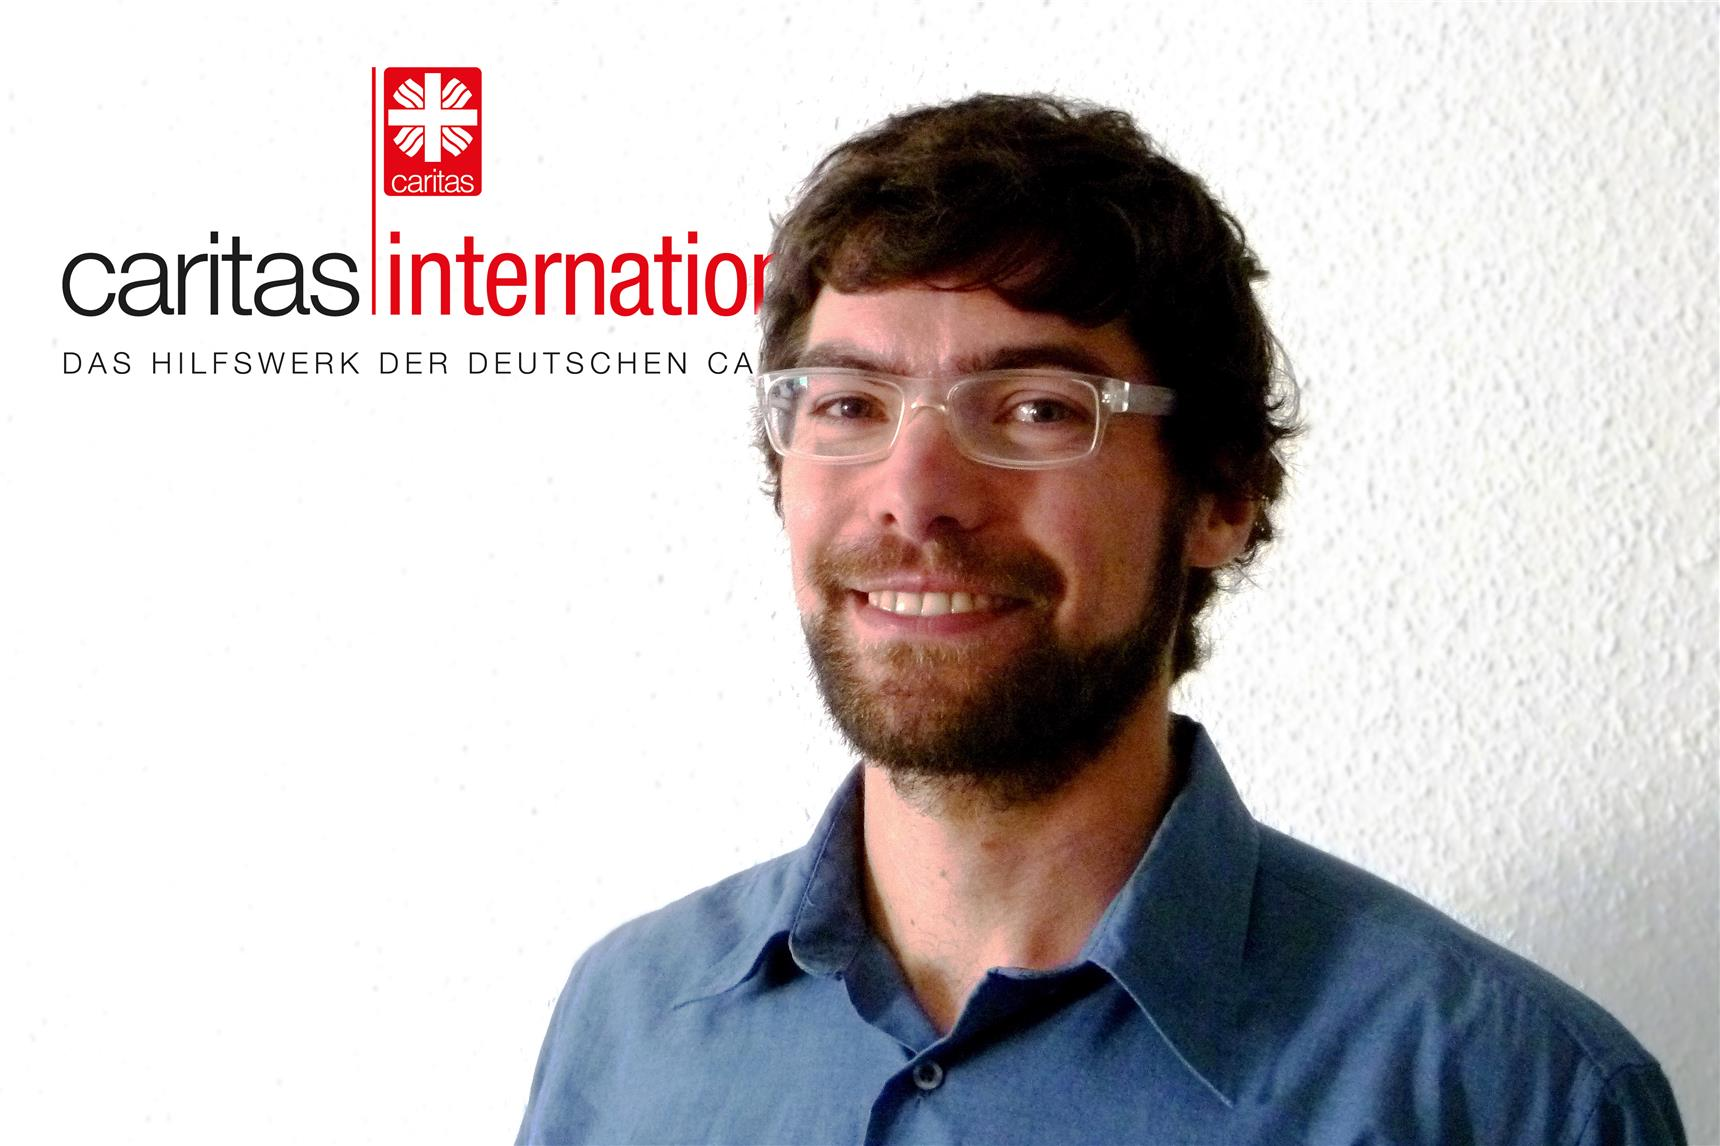 Simon Tremmel, Südsudan-Referent bei Caritas international